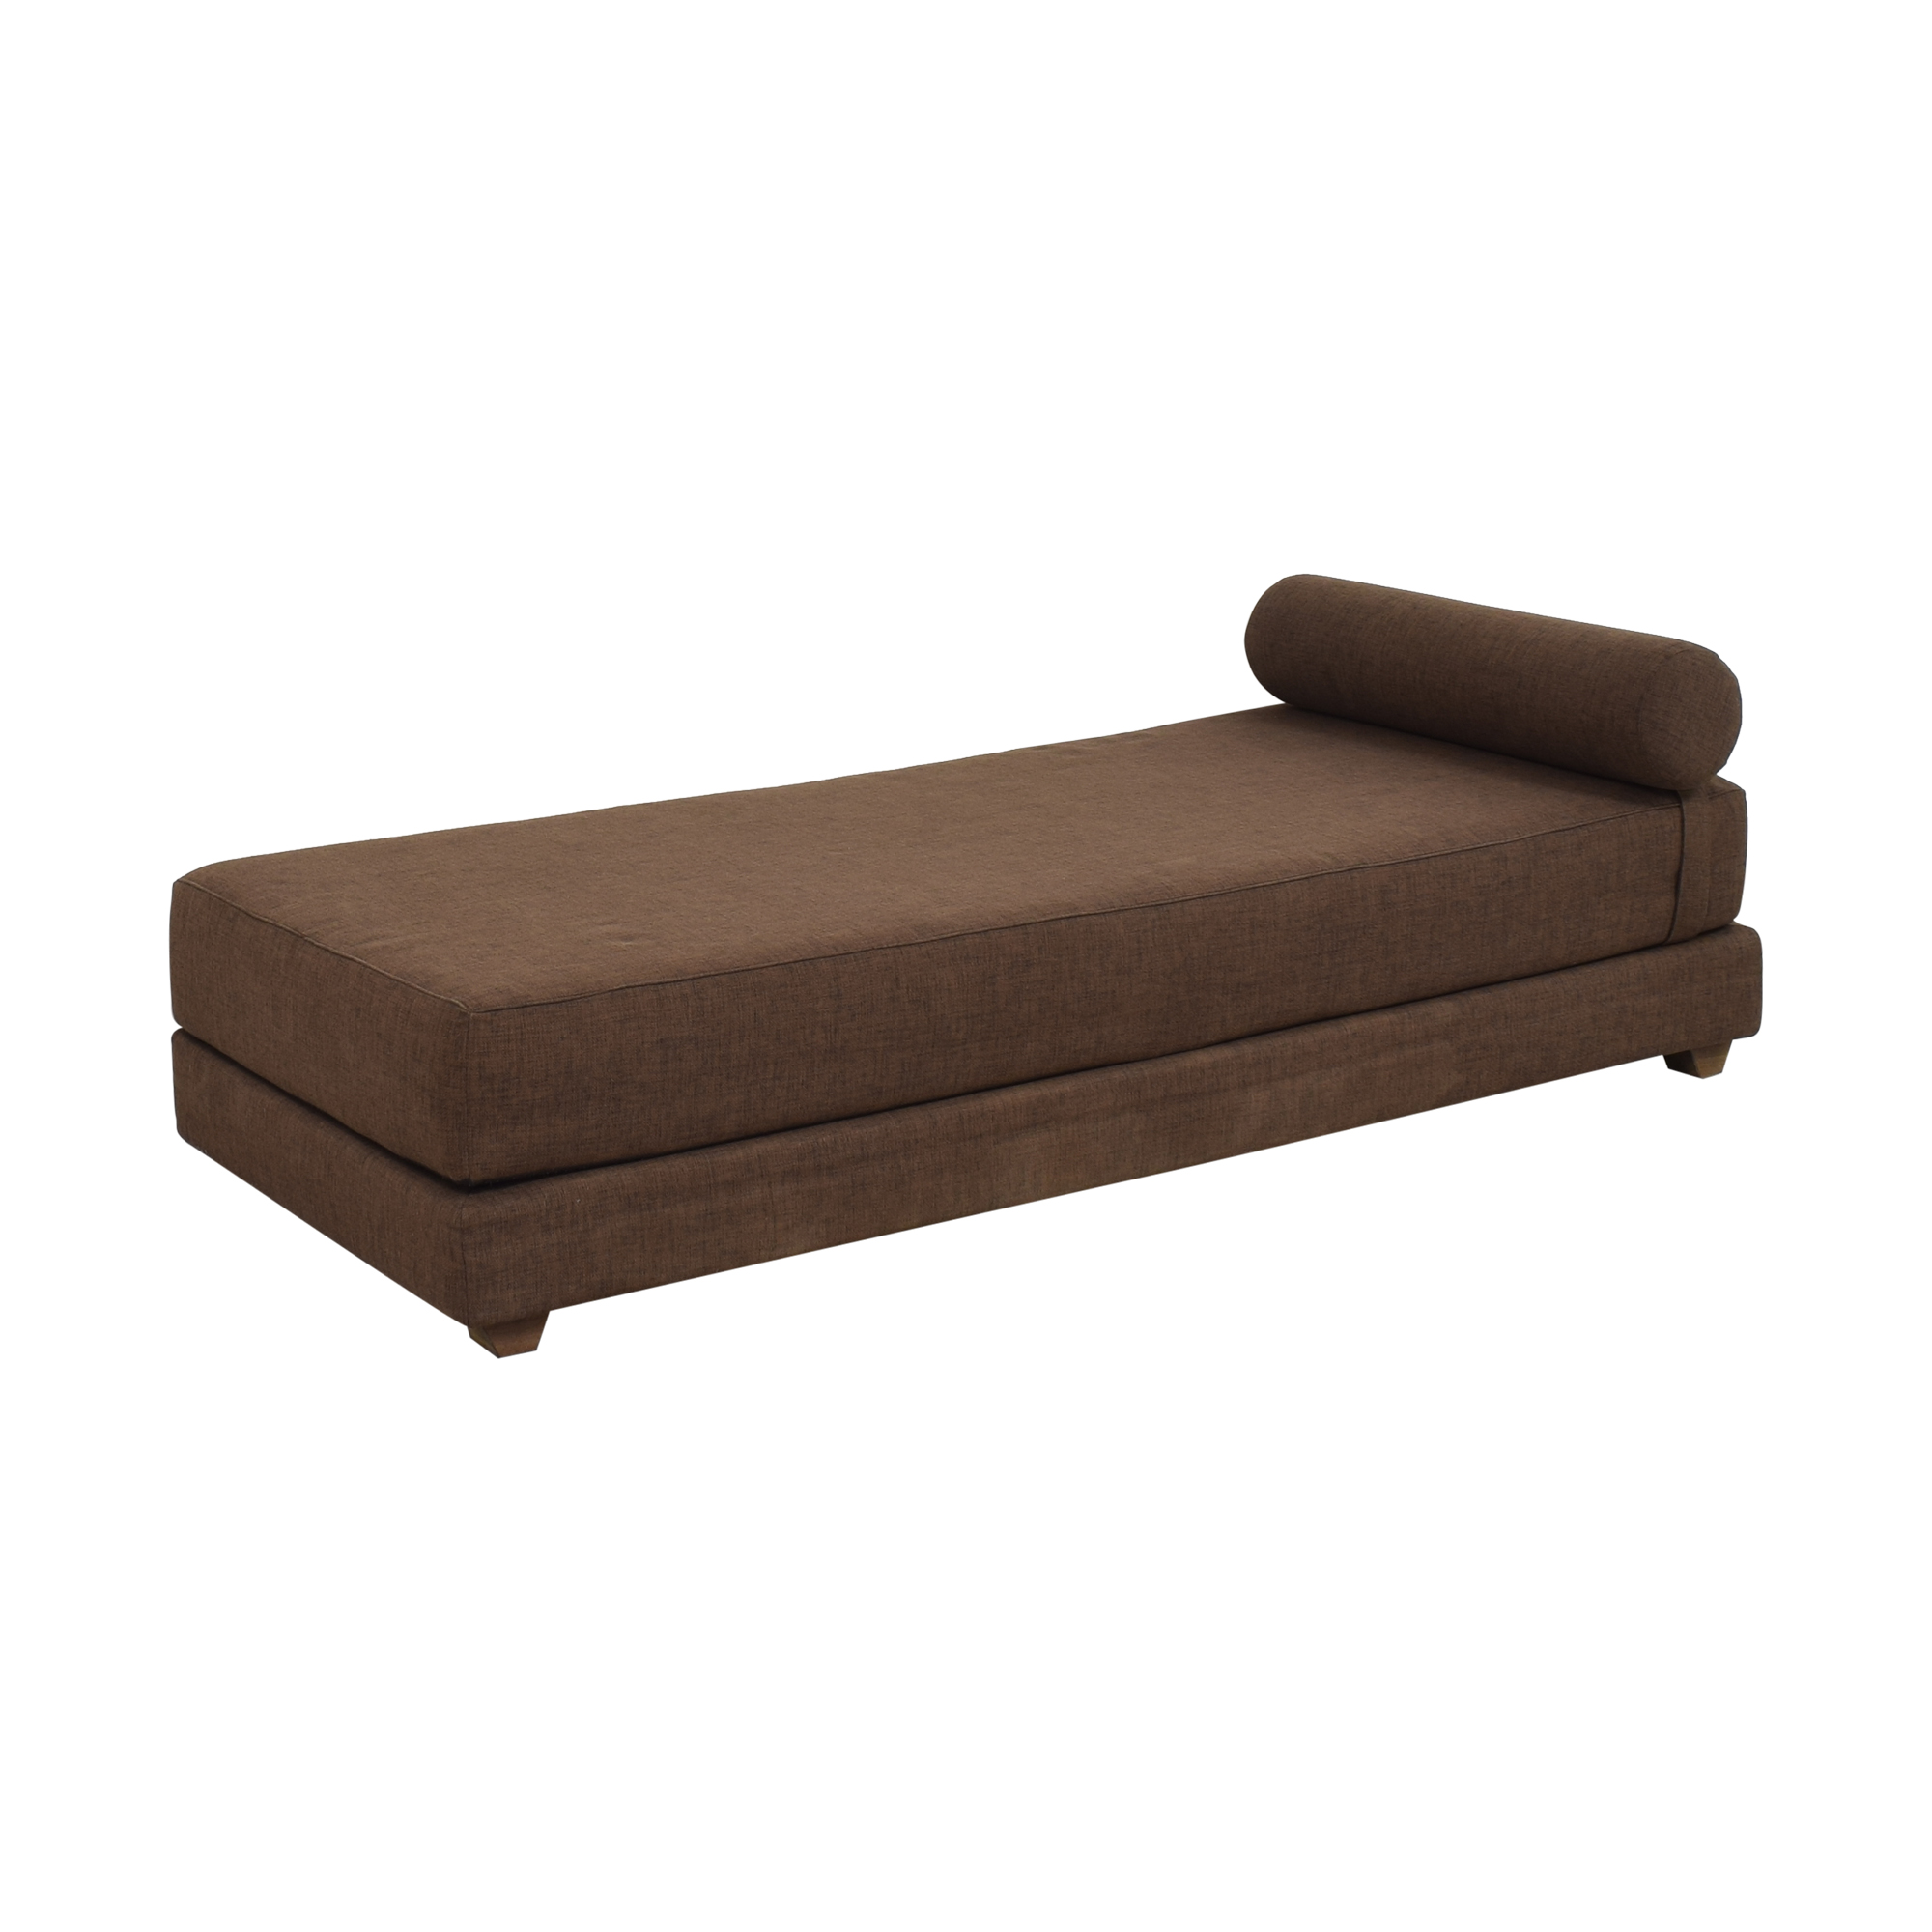 CB2 CB2 Lubi Sleeper Daybed price